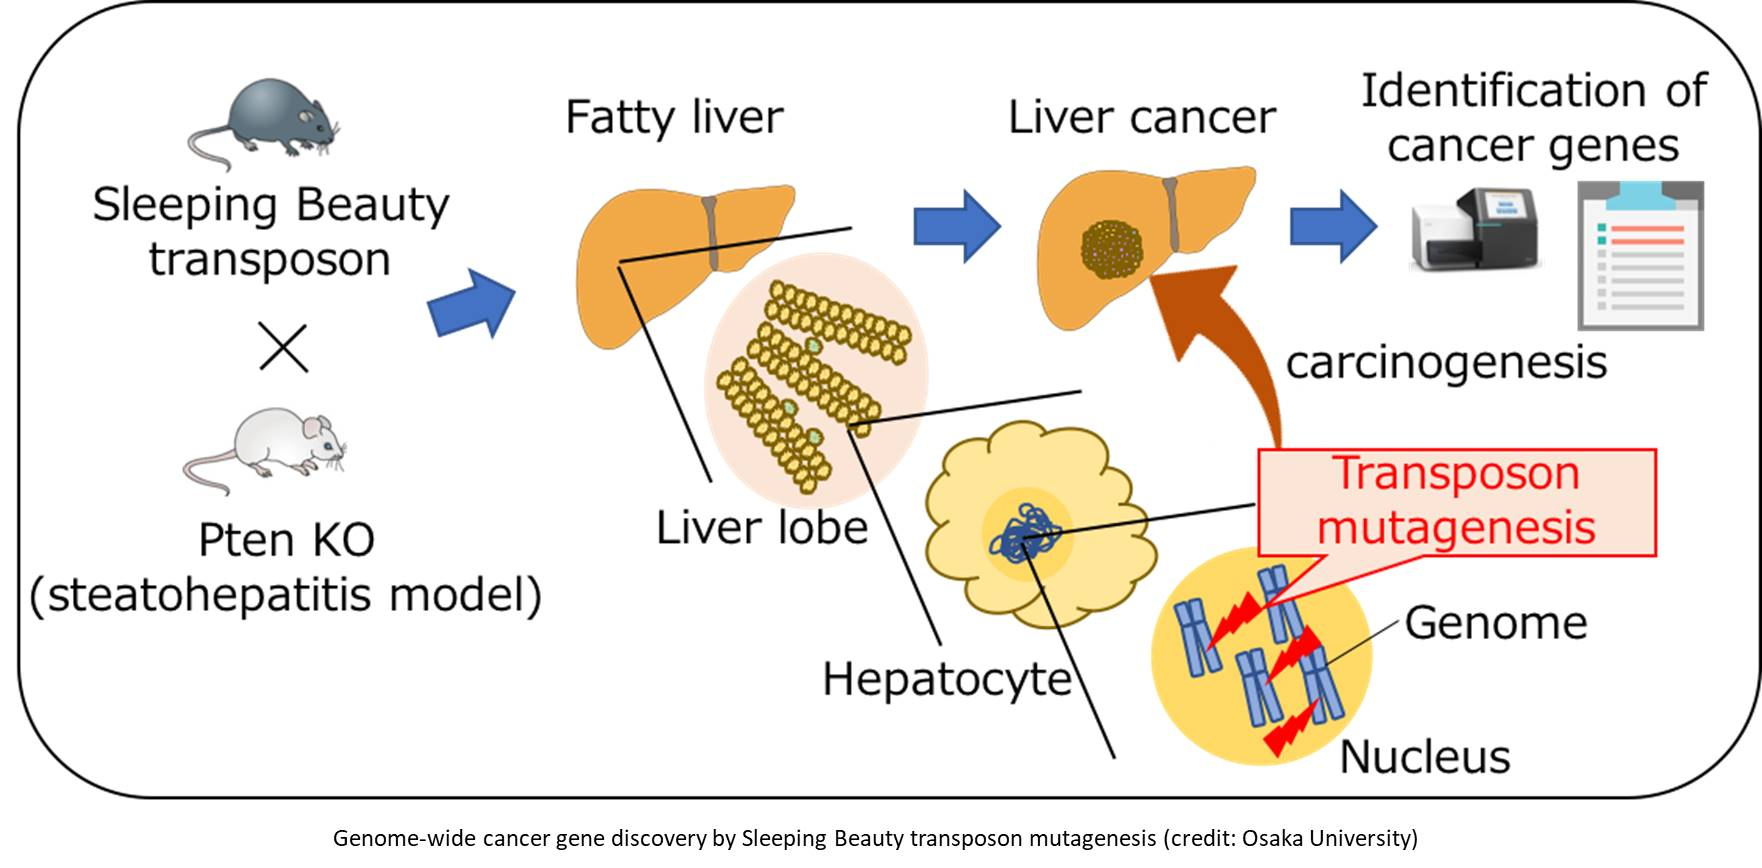 Gene screening technique called Sleeping Beauty mutagenesis to identify genes potentially responsible for a fatty liver-associated liver cancer